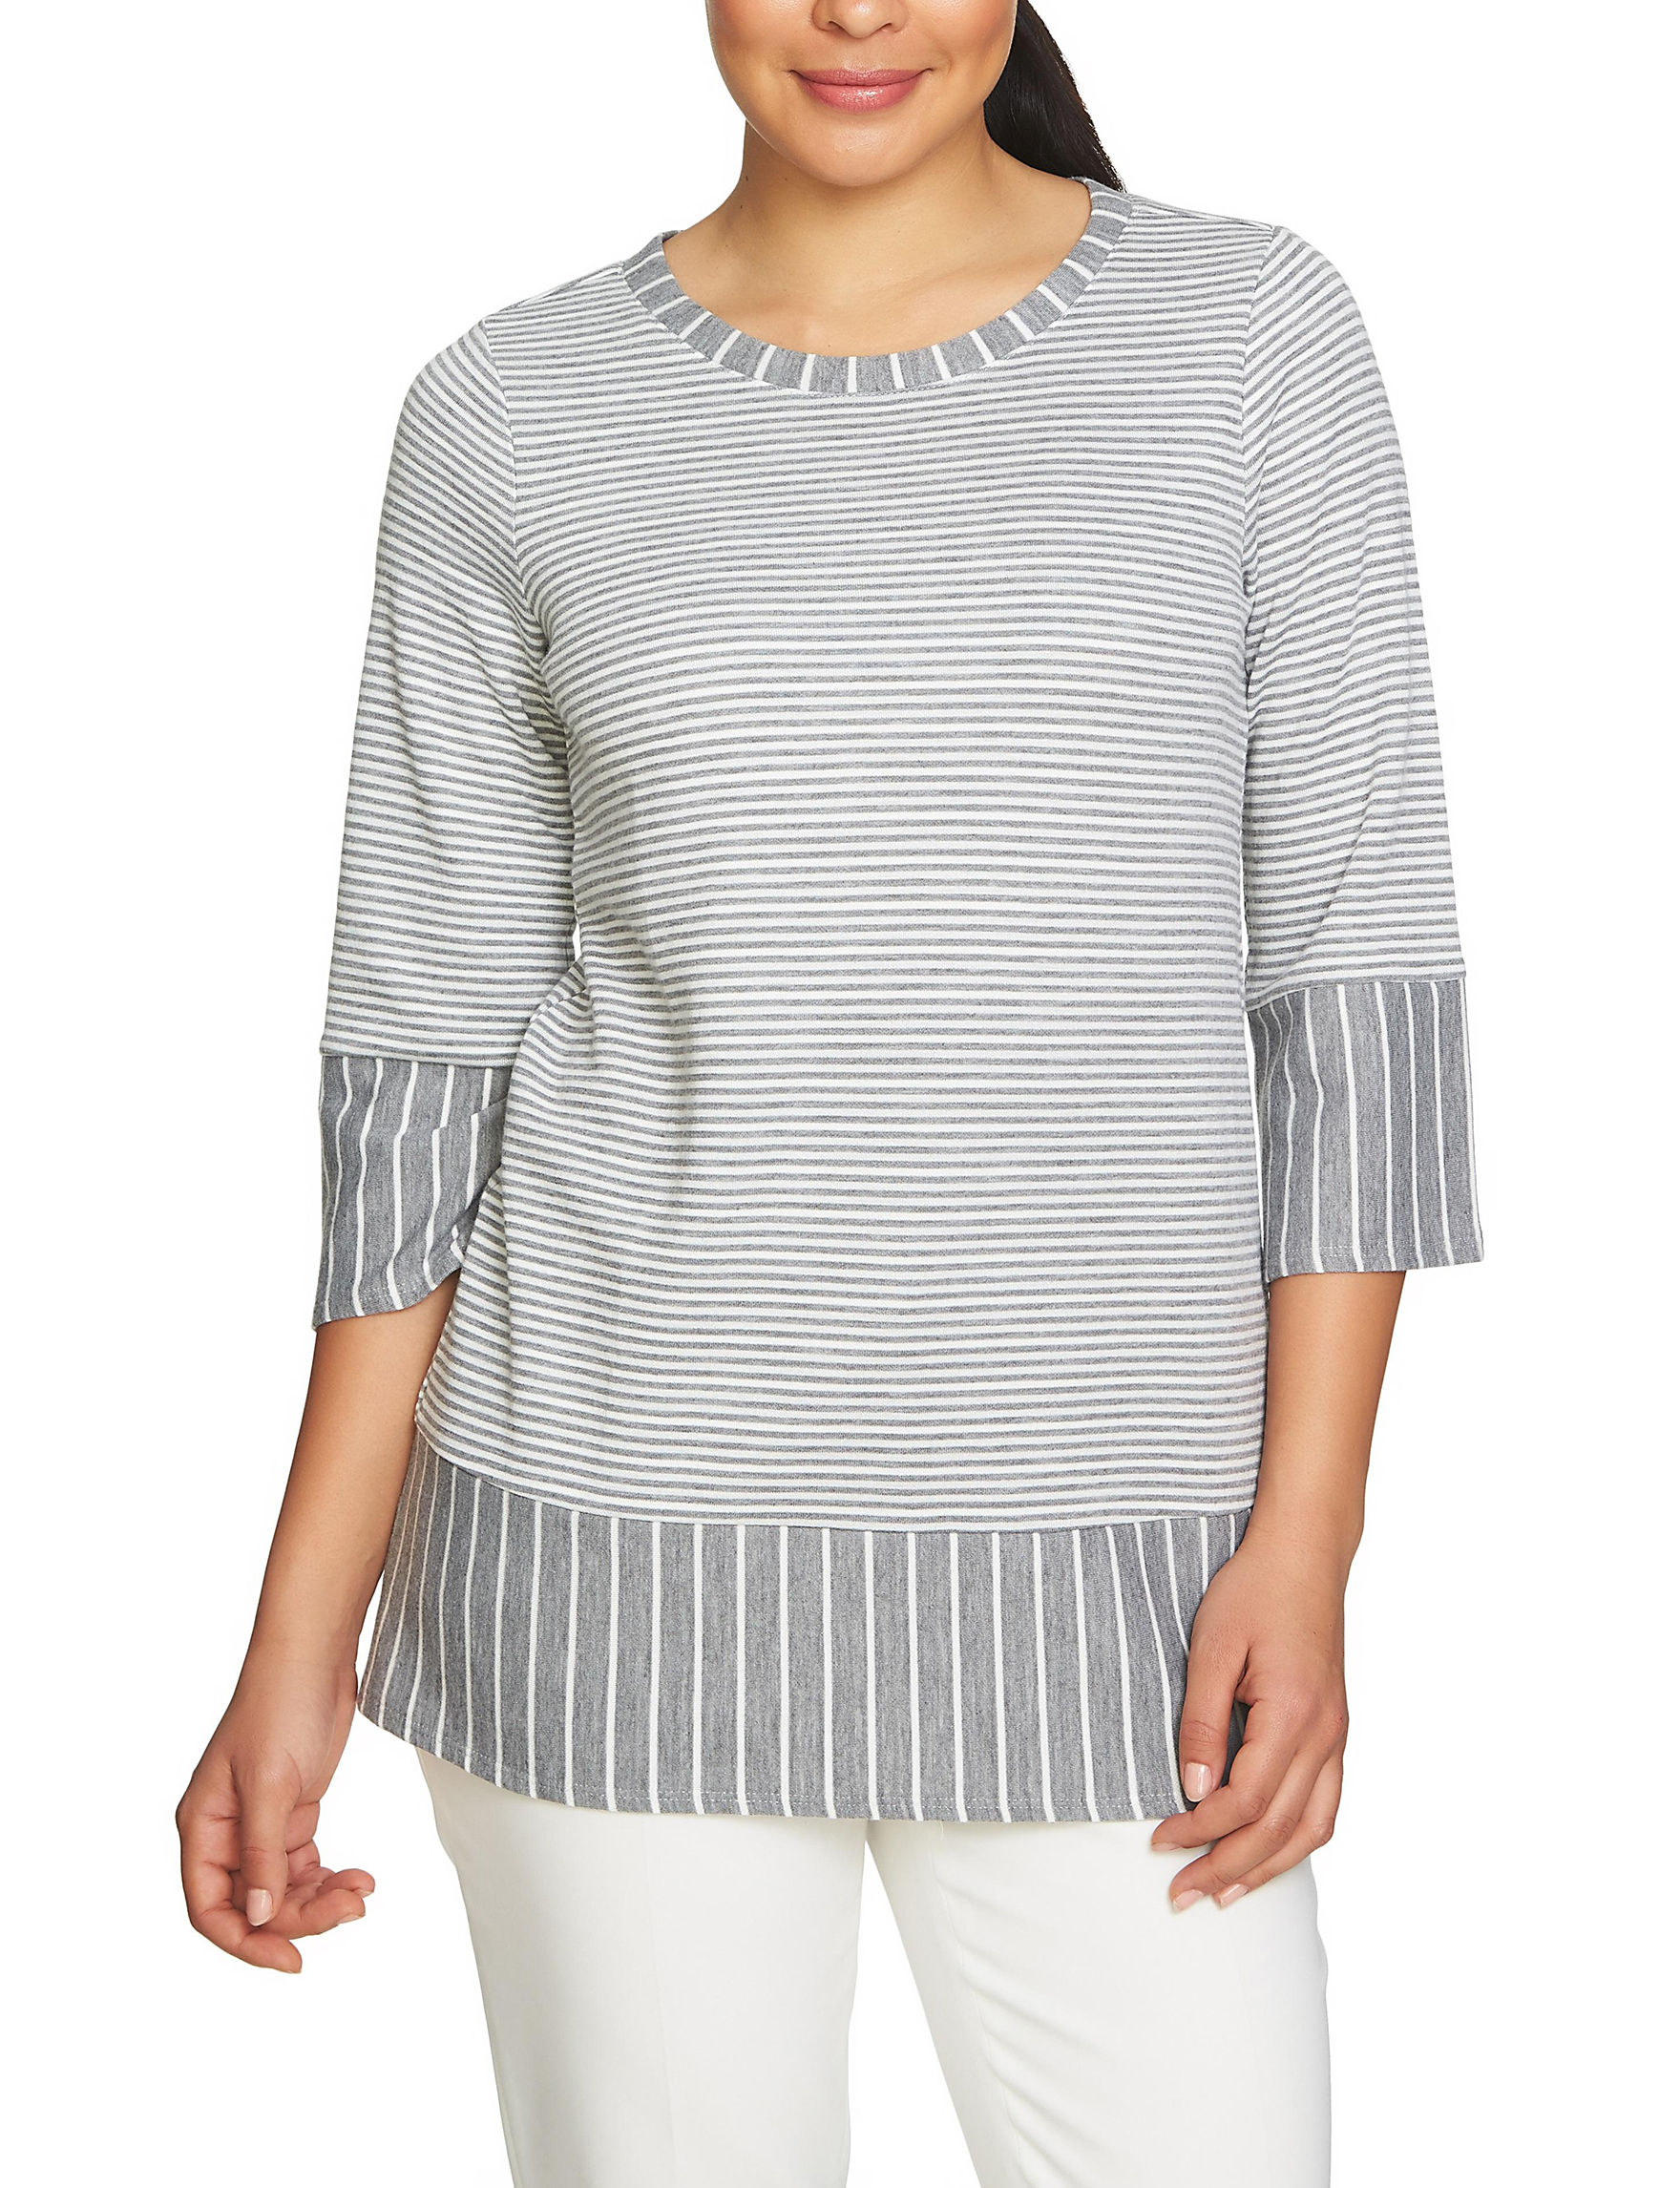 Chaus Grey / White Pull-overs Shirts & Blouses